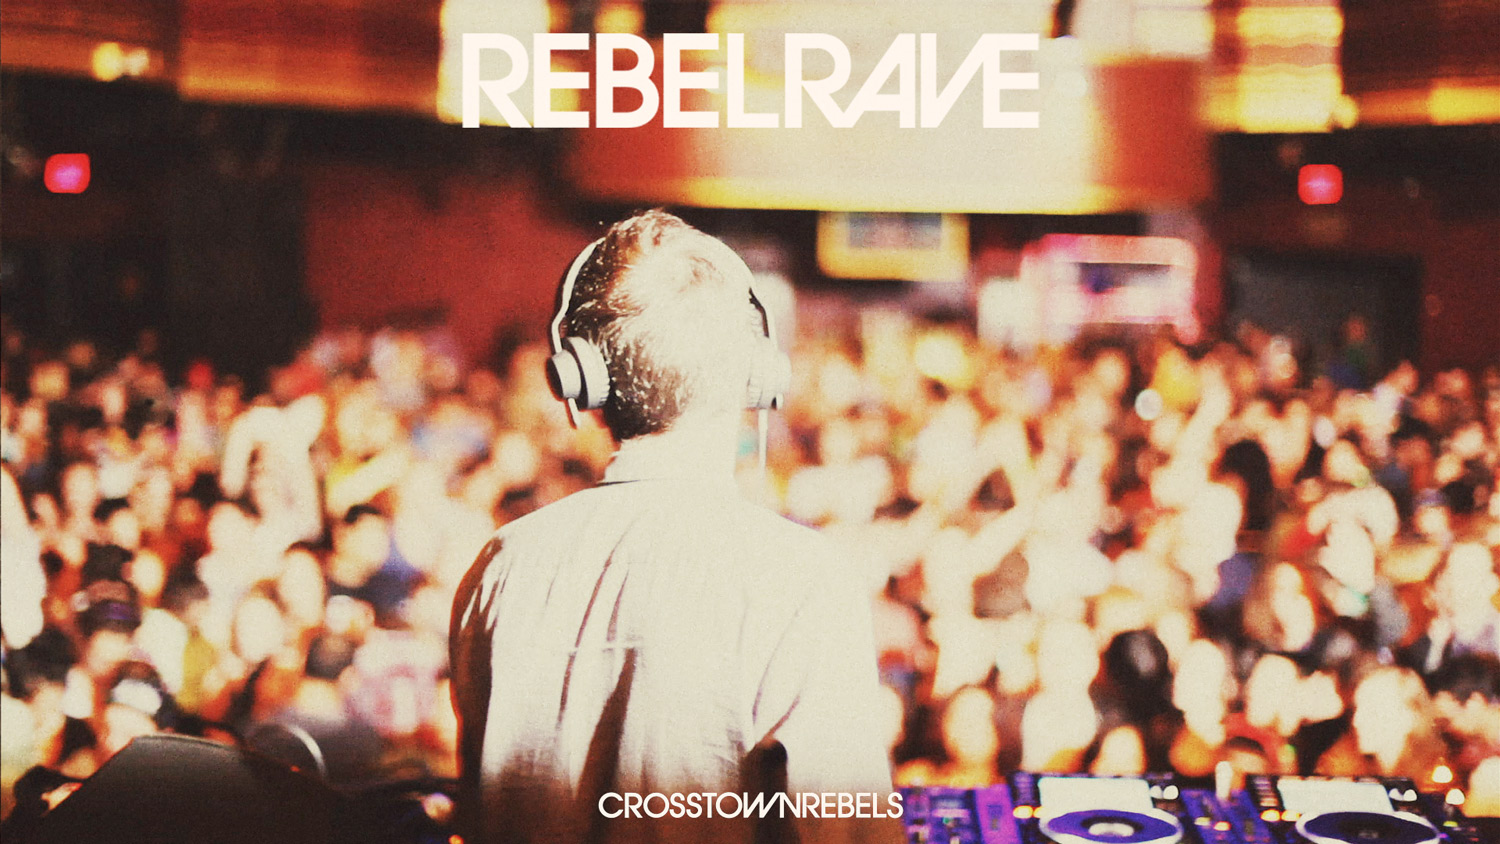 The Rebelrave Series